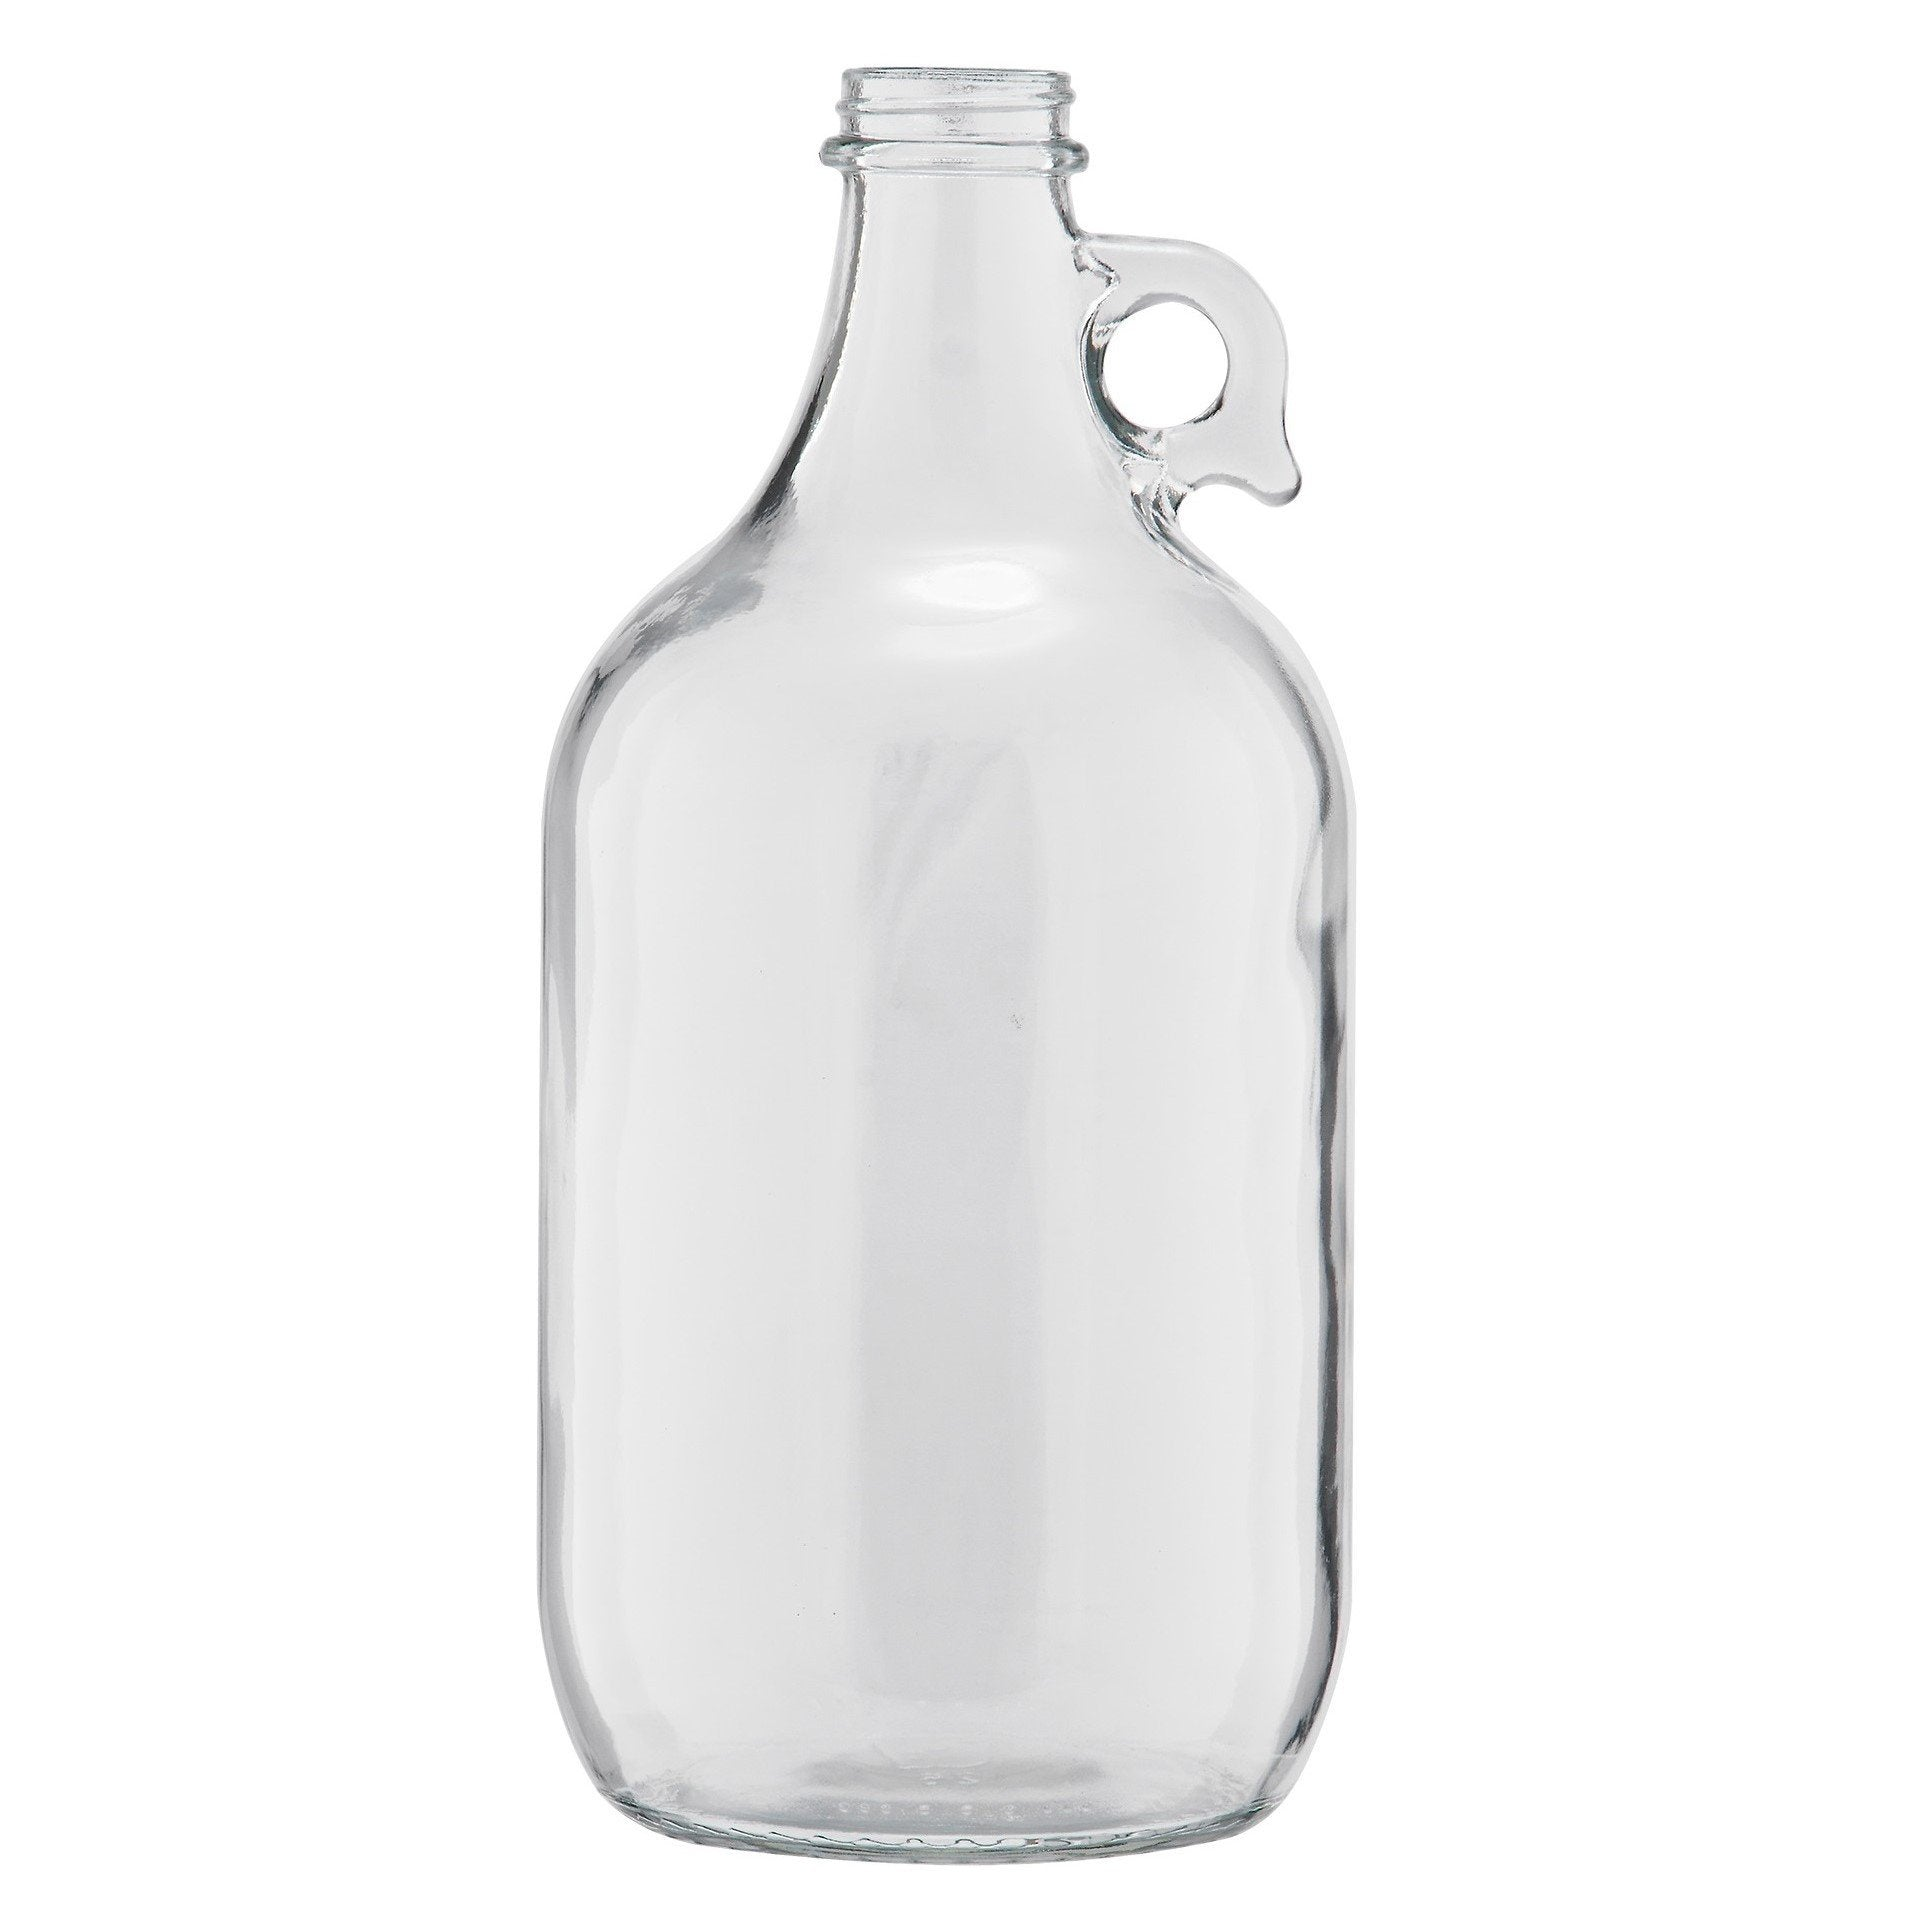 Half Gallon (1.89L) Jug - Clear